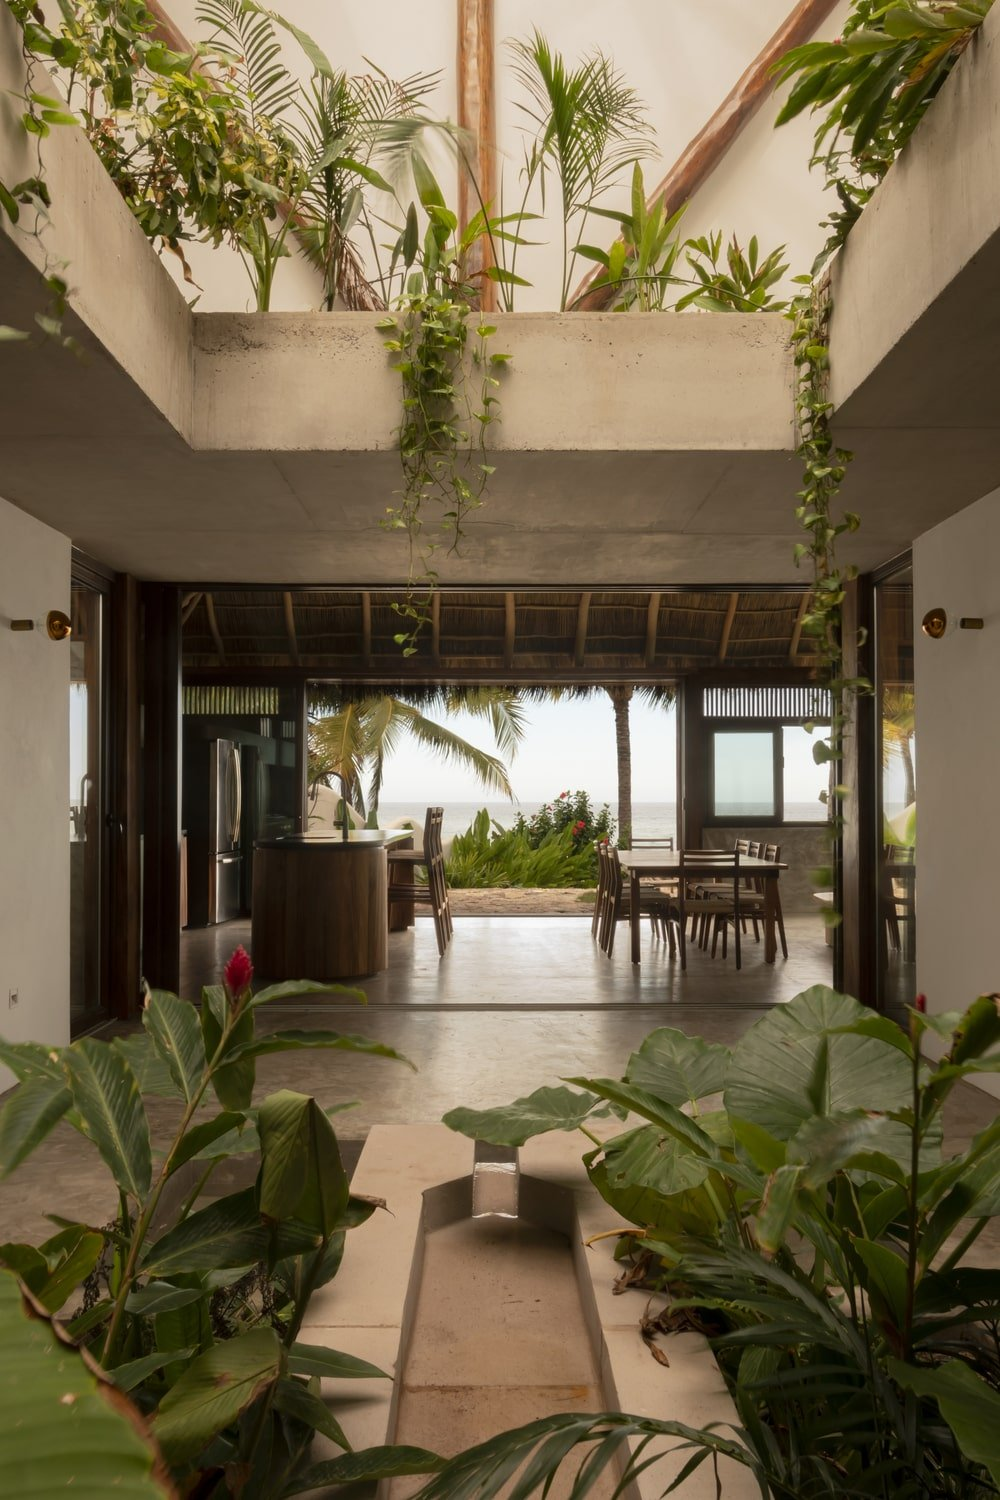 This view showcases more of the plants above the open ceiling and a view of the kitchen and dining area on the far side.